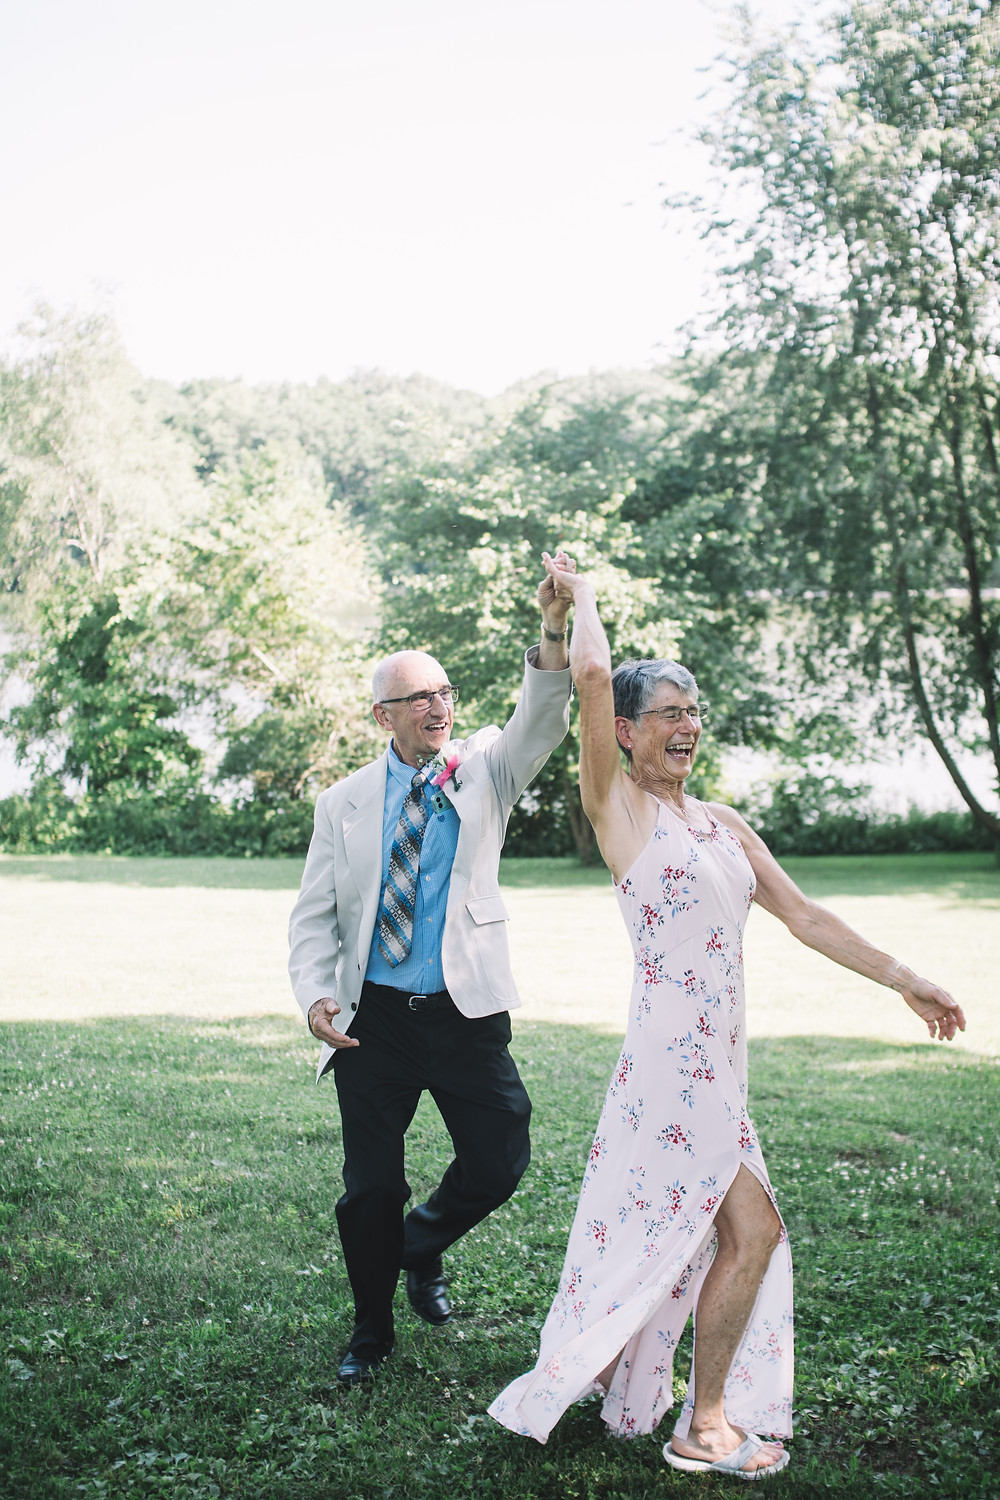 Wedding Photography | Dancing | Springfield | Bride | Illinois | IL | Lincoln | Soul Focus | Lake Springfield Christian Assembly